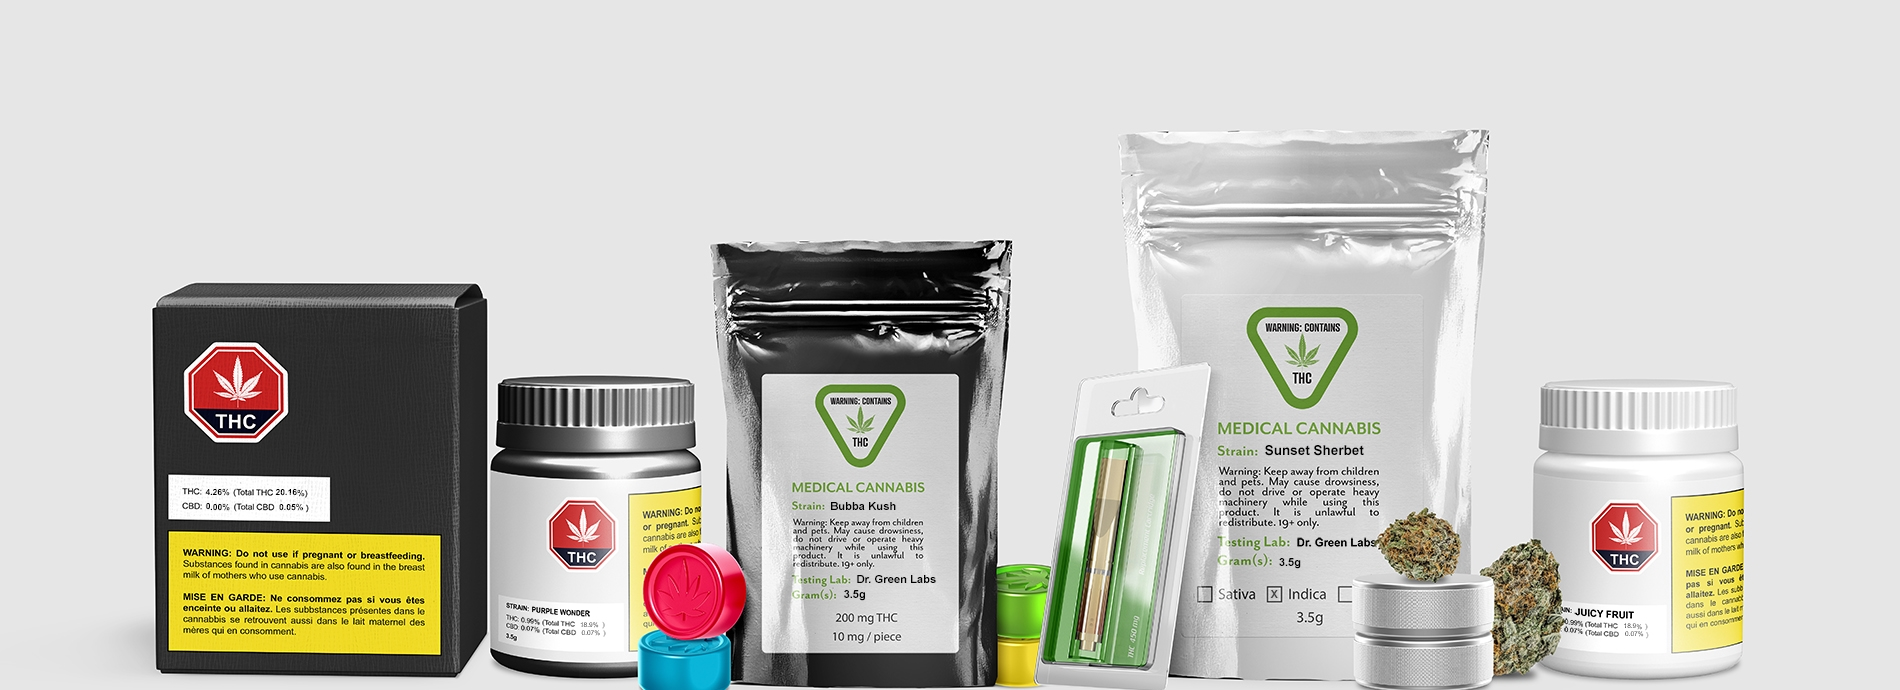 cannabis-label-products